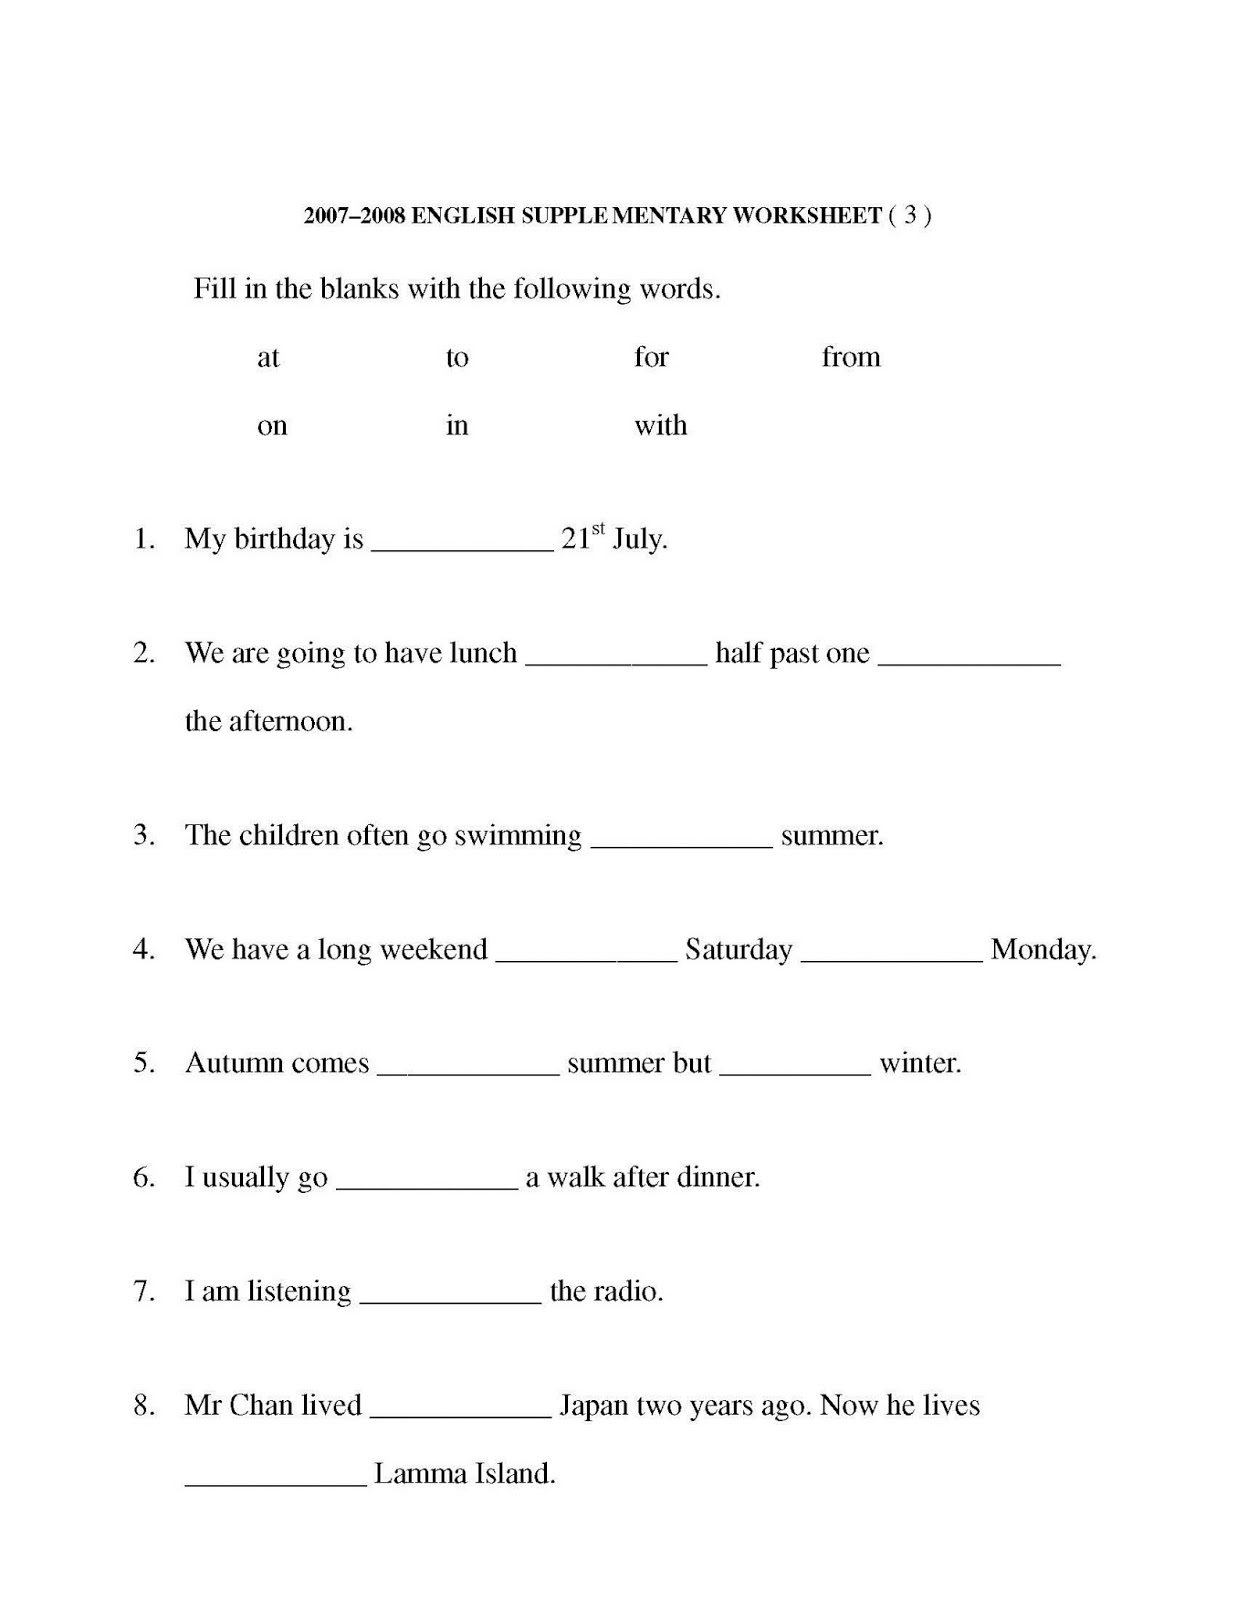 Mama Resources P5 English Worksheet